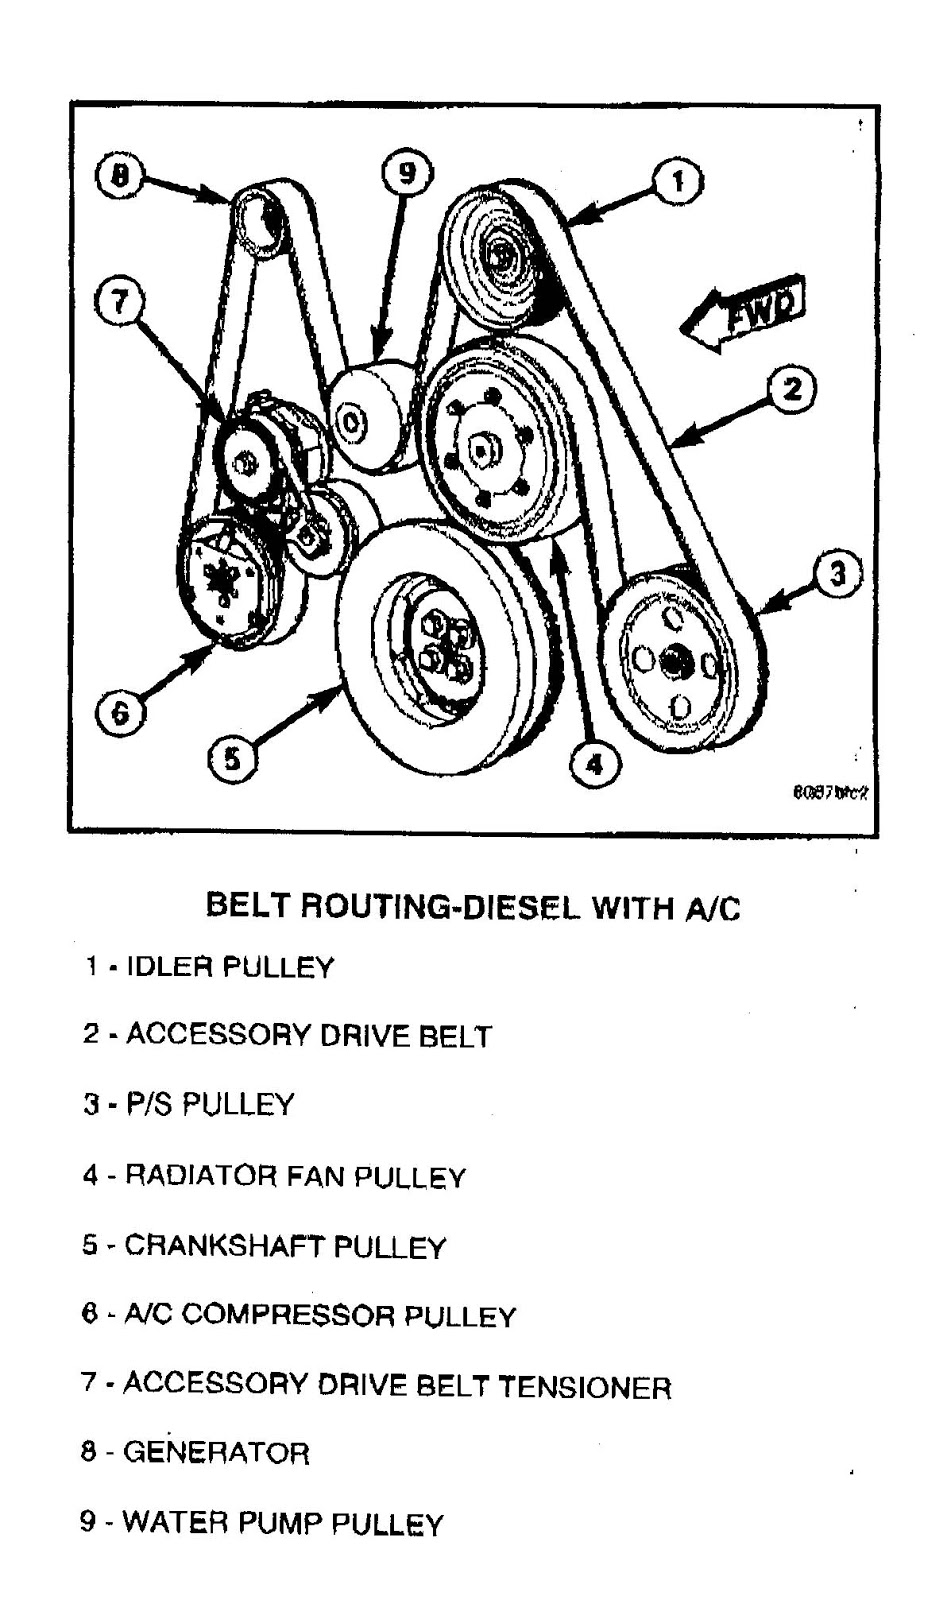 1995 Dodge Engine Diagram Automotive Wiring Diagrams 2003 Stratus 1999 Neon Belt House Symbols